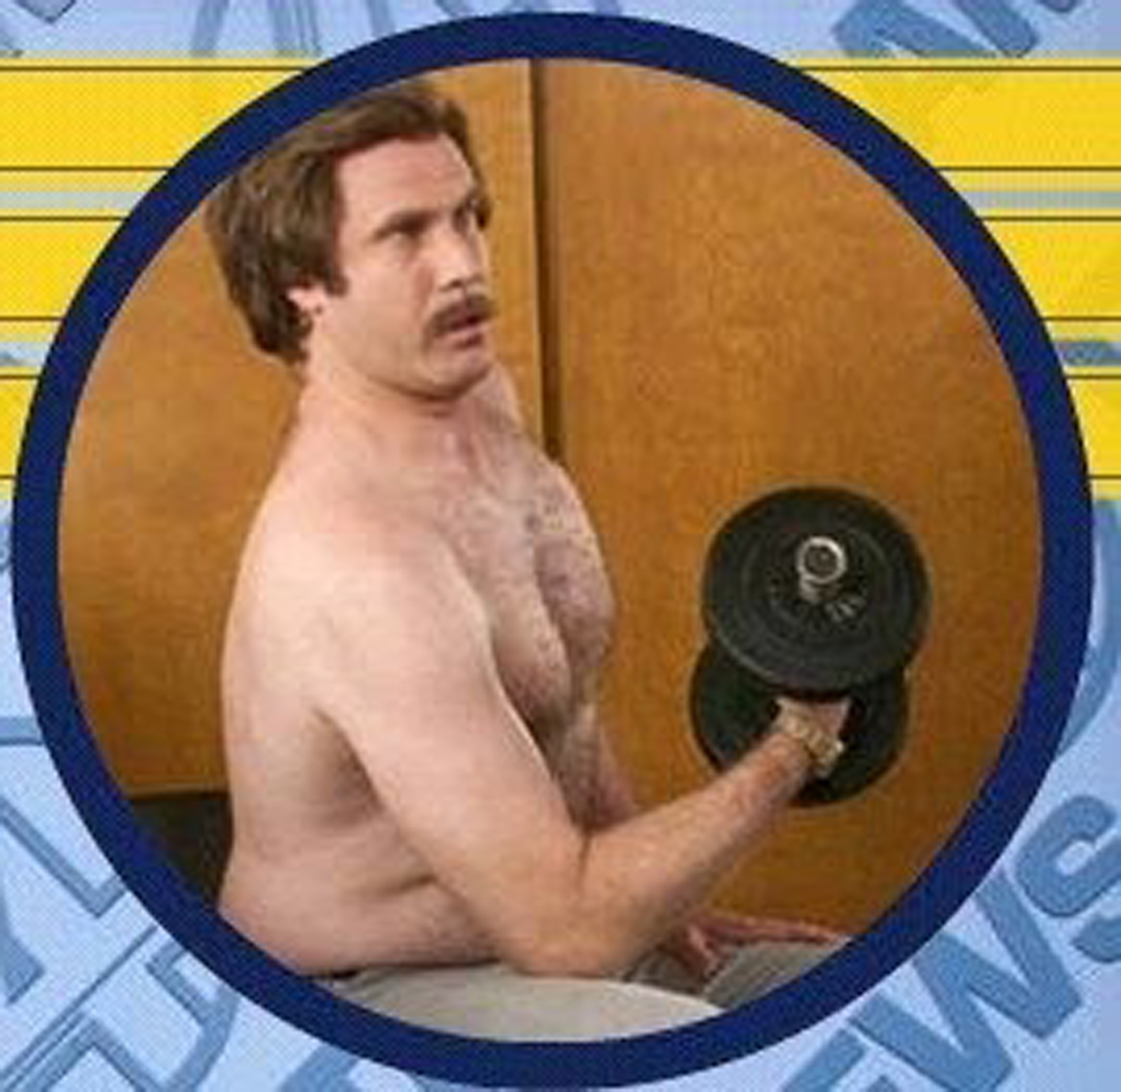 Ron Burgundy, shirtless and lifting weights